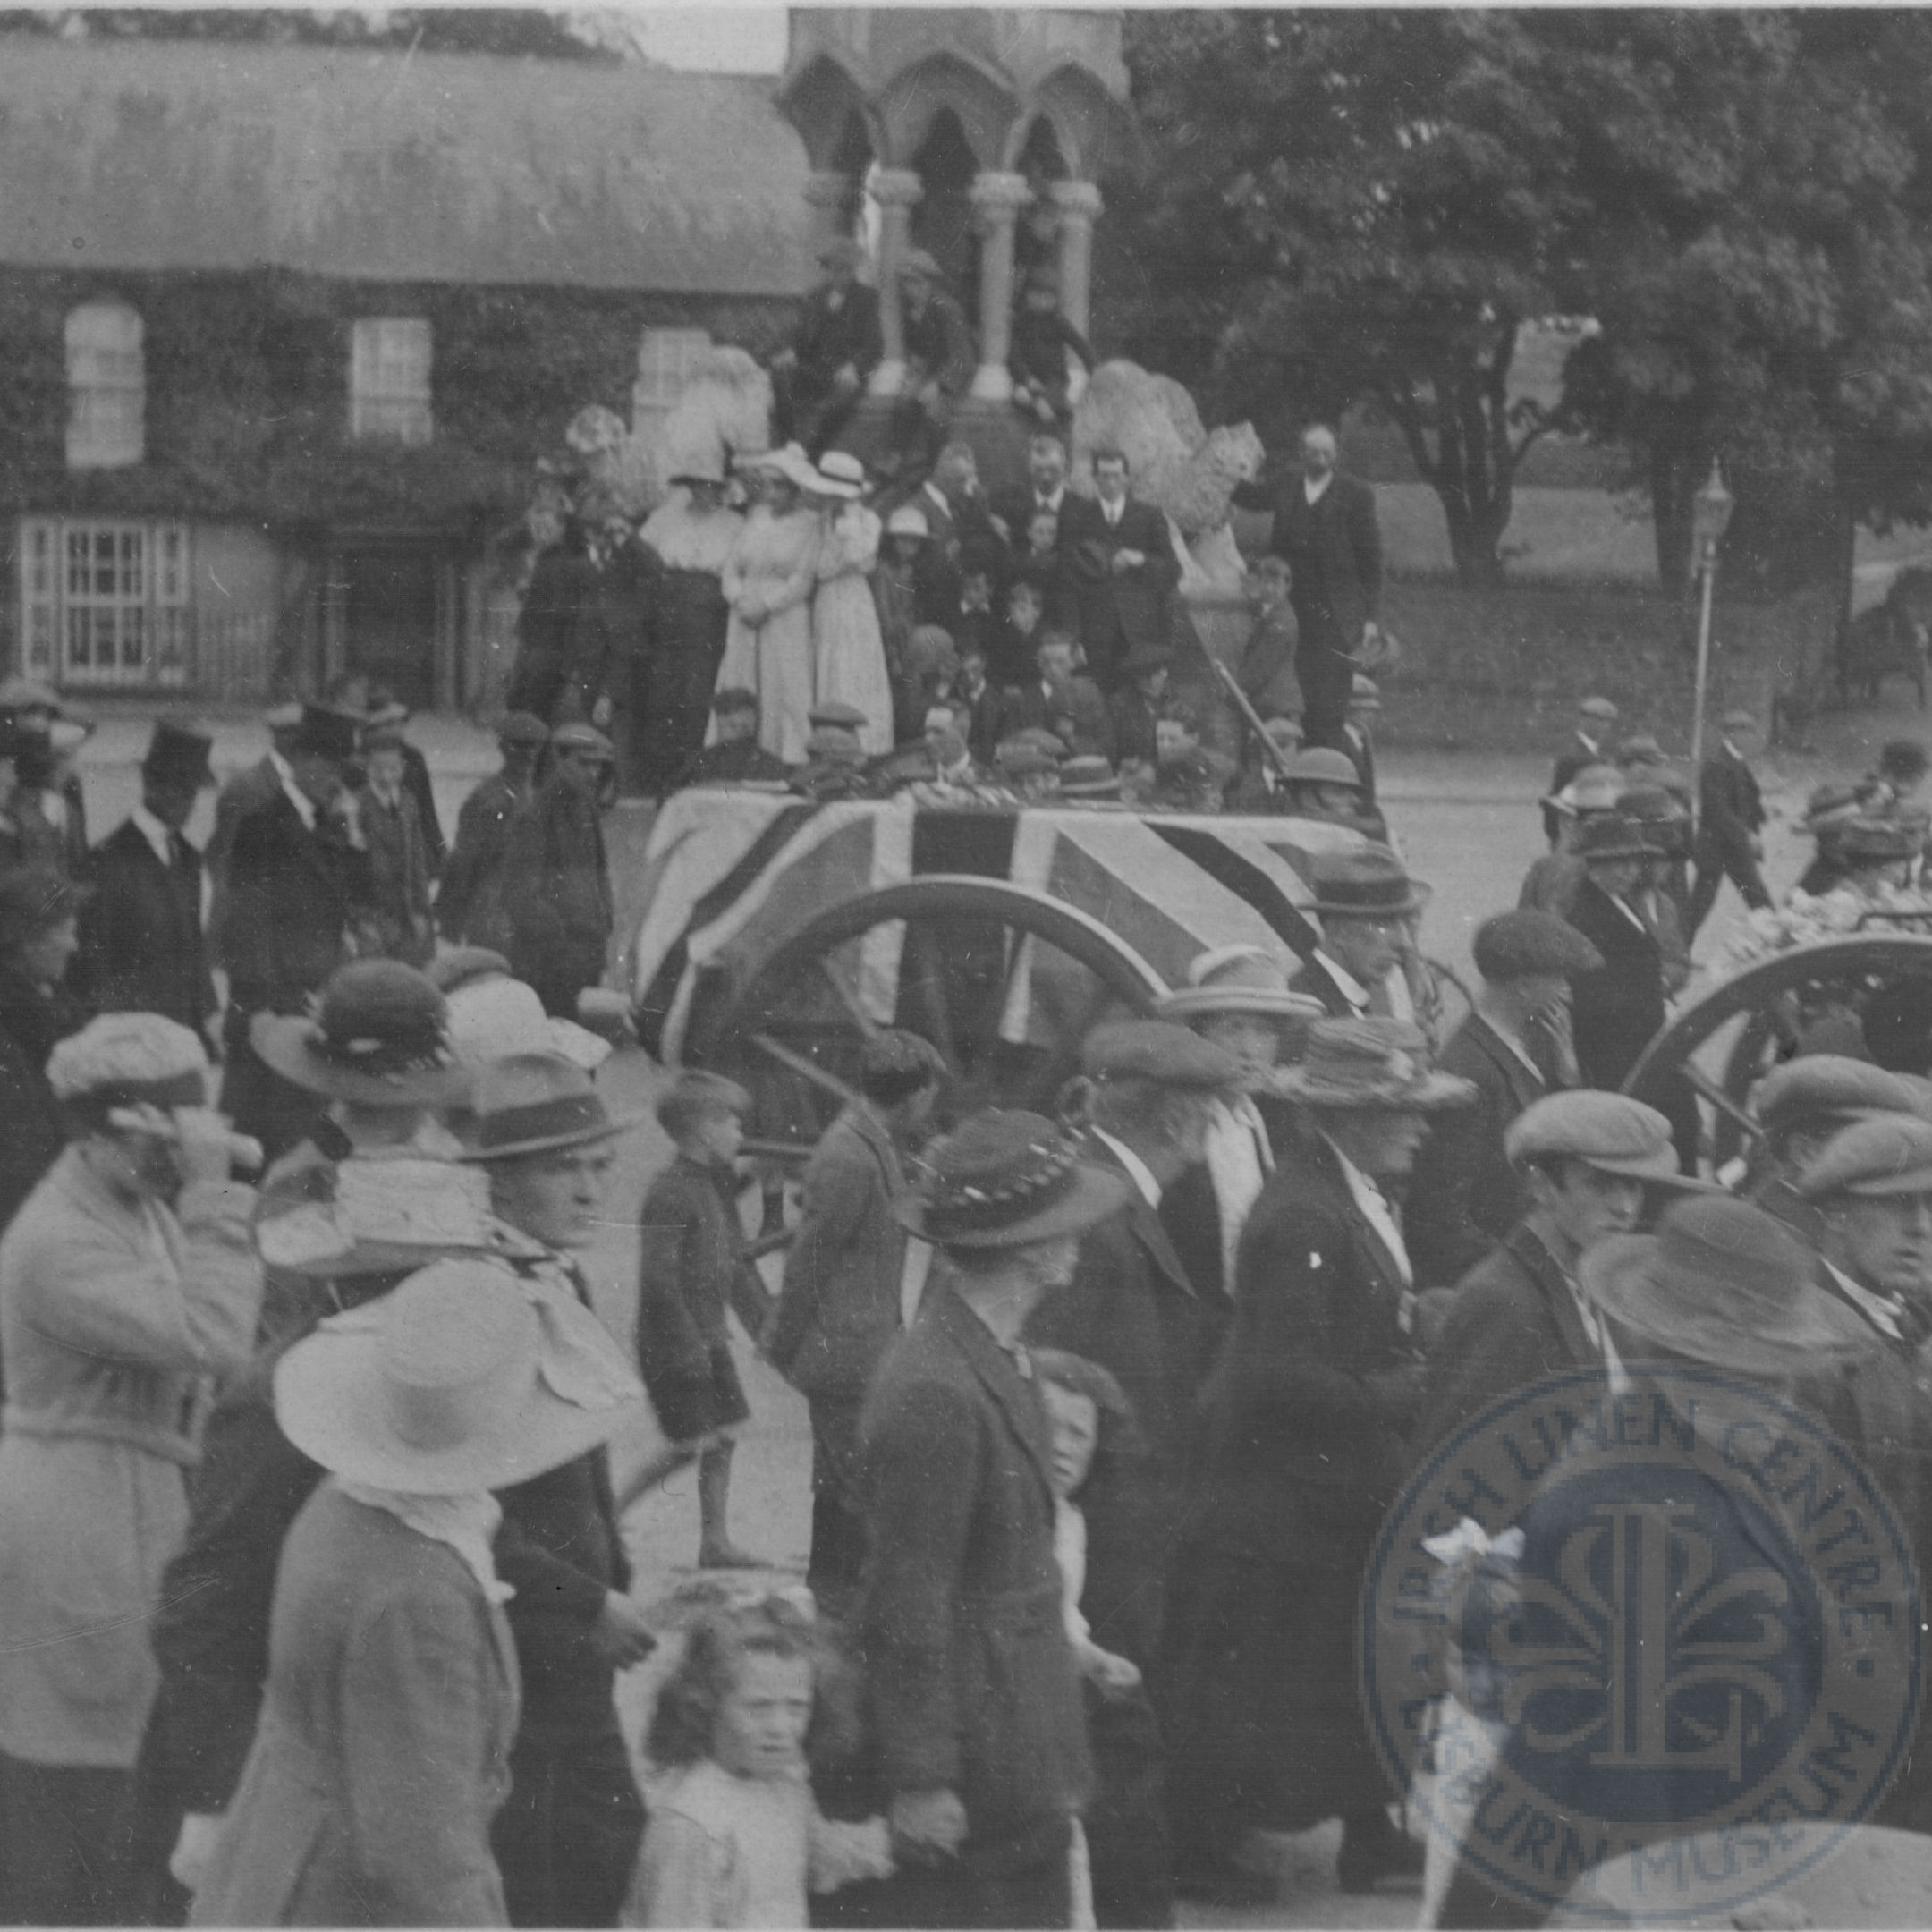 Smyth's funeral cortège in Banbridge, July 1920